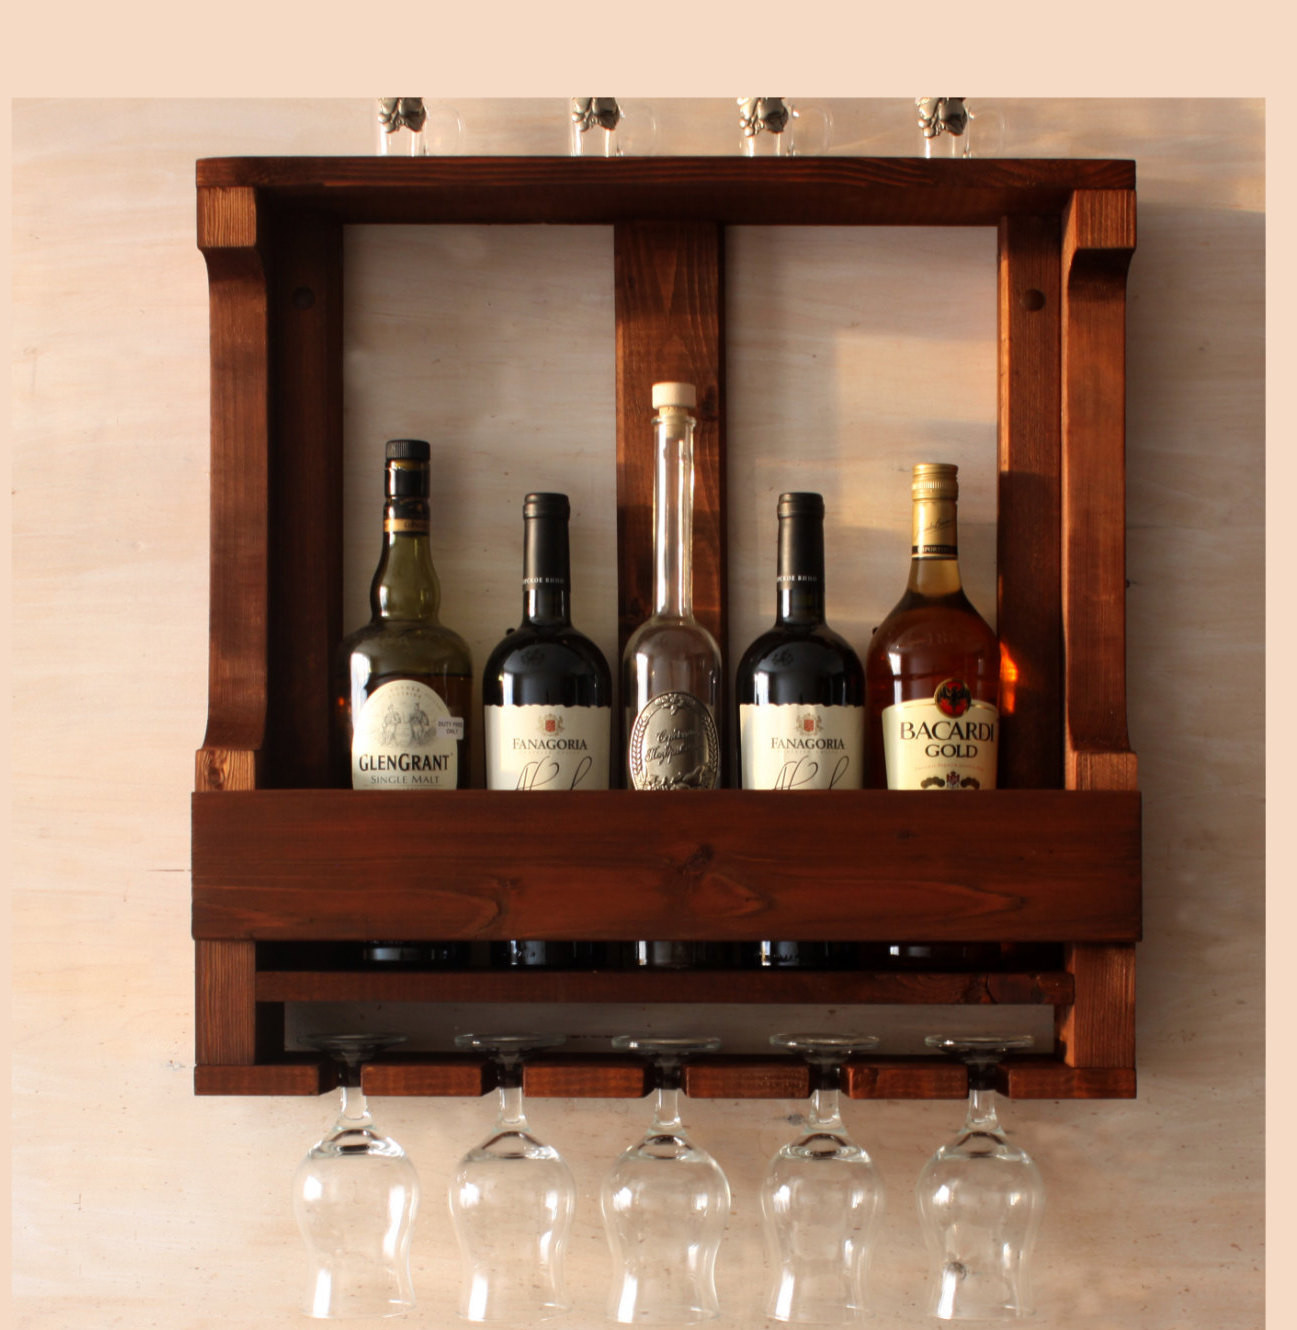 Best ideas about Wine Rack Wall Decor . Save or Pin Wine rack wall mounted Rustic wine rack Rustic decor Now.